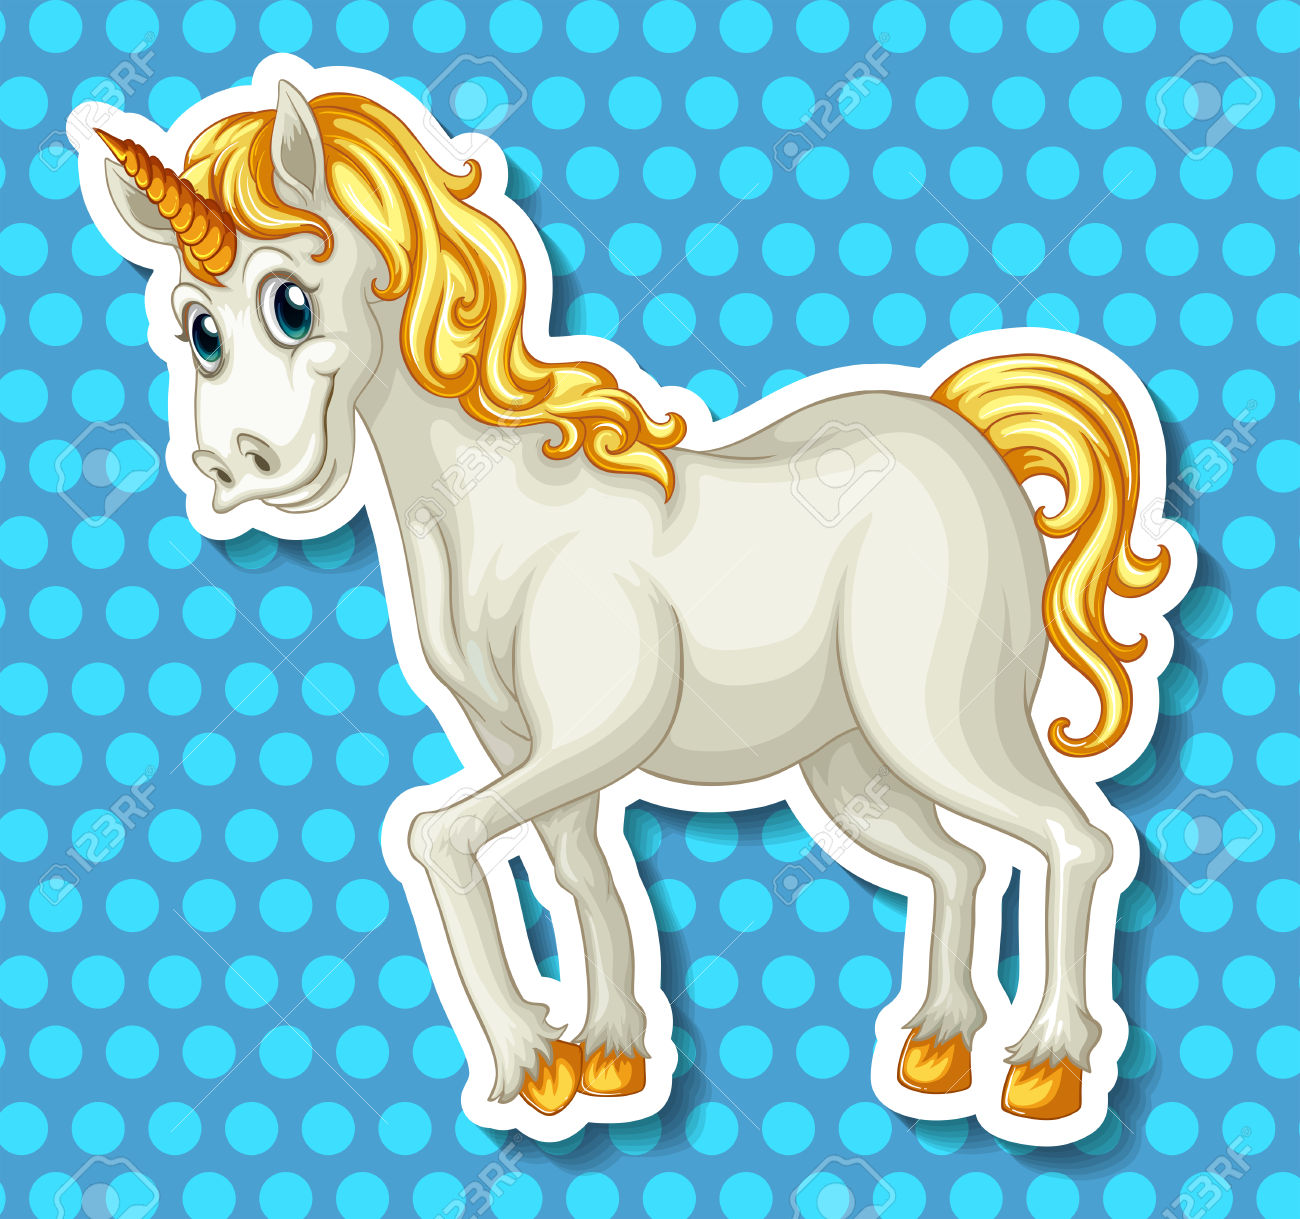 Close Up White Unicorn With Golden Horn Royalty Free Cliparts.